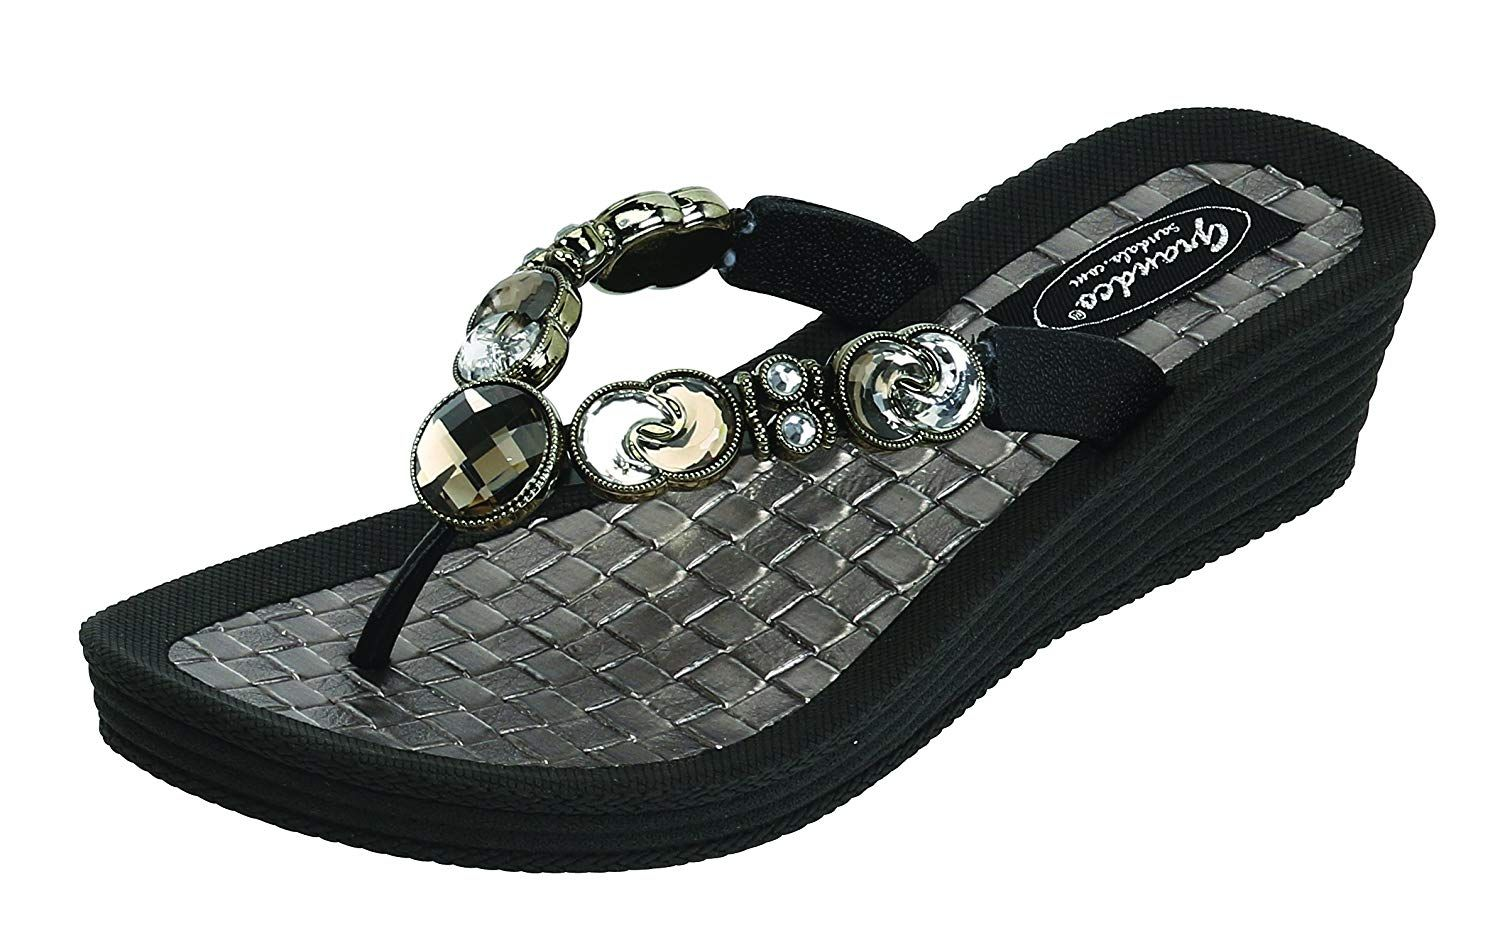 3588c56de35ae Grandco Women s Crescent Wedge Thong Sandal    Very kind of you to have  dropped by